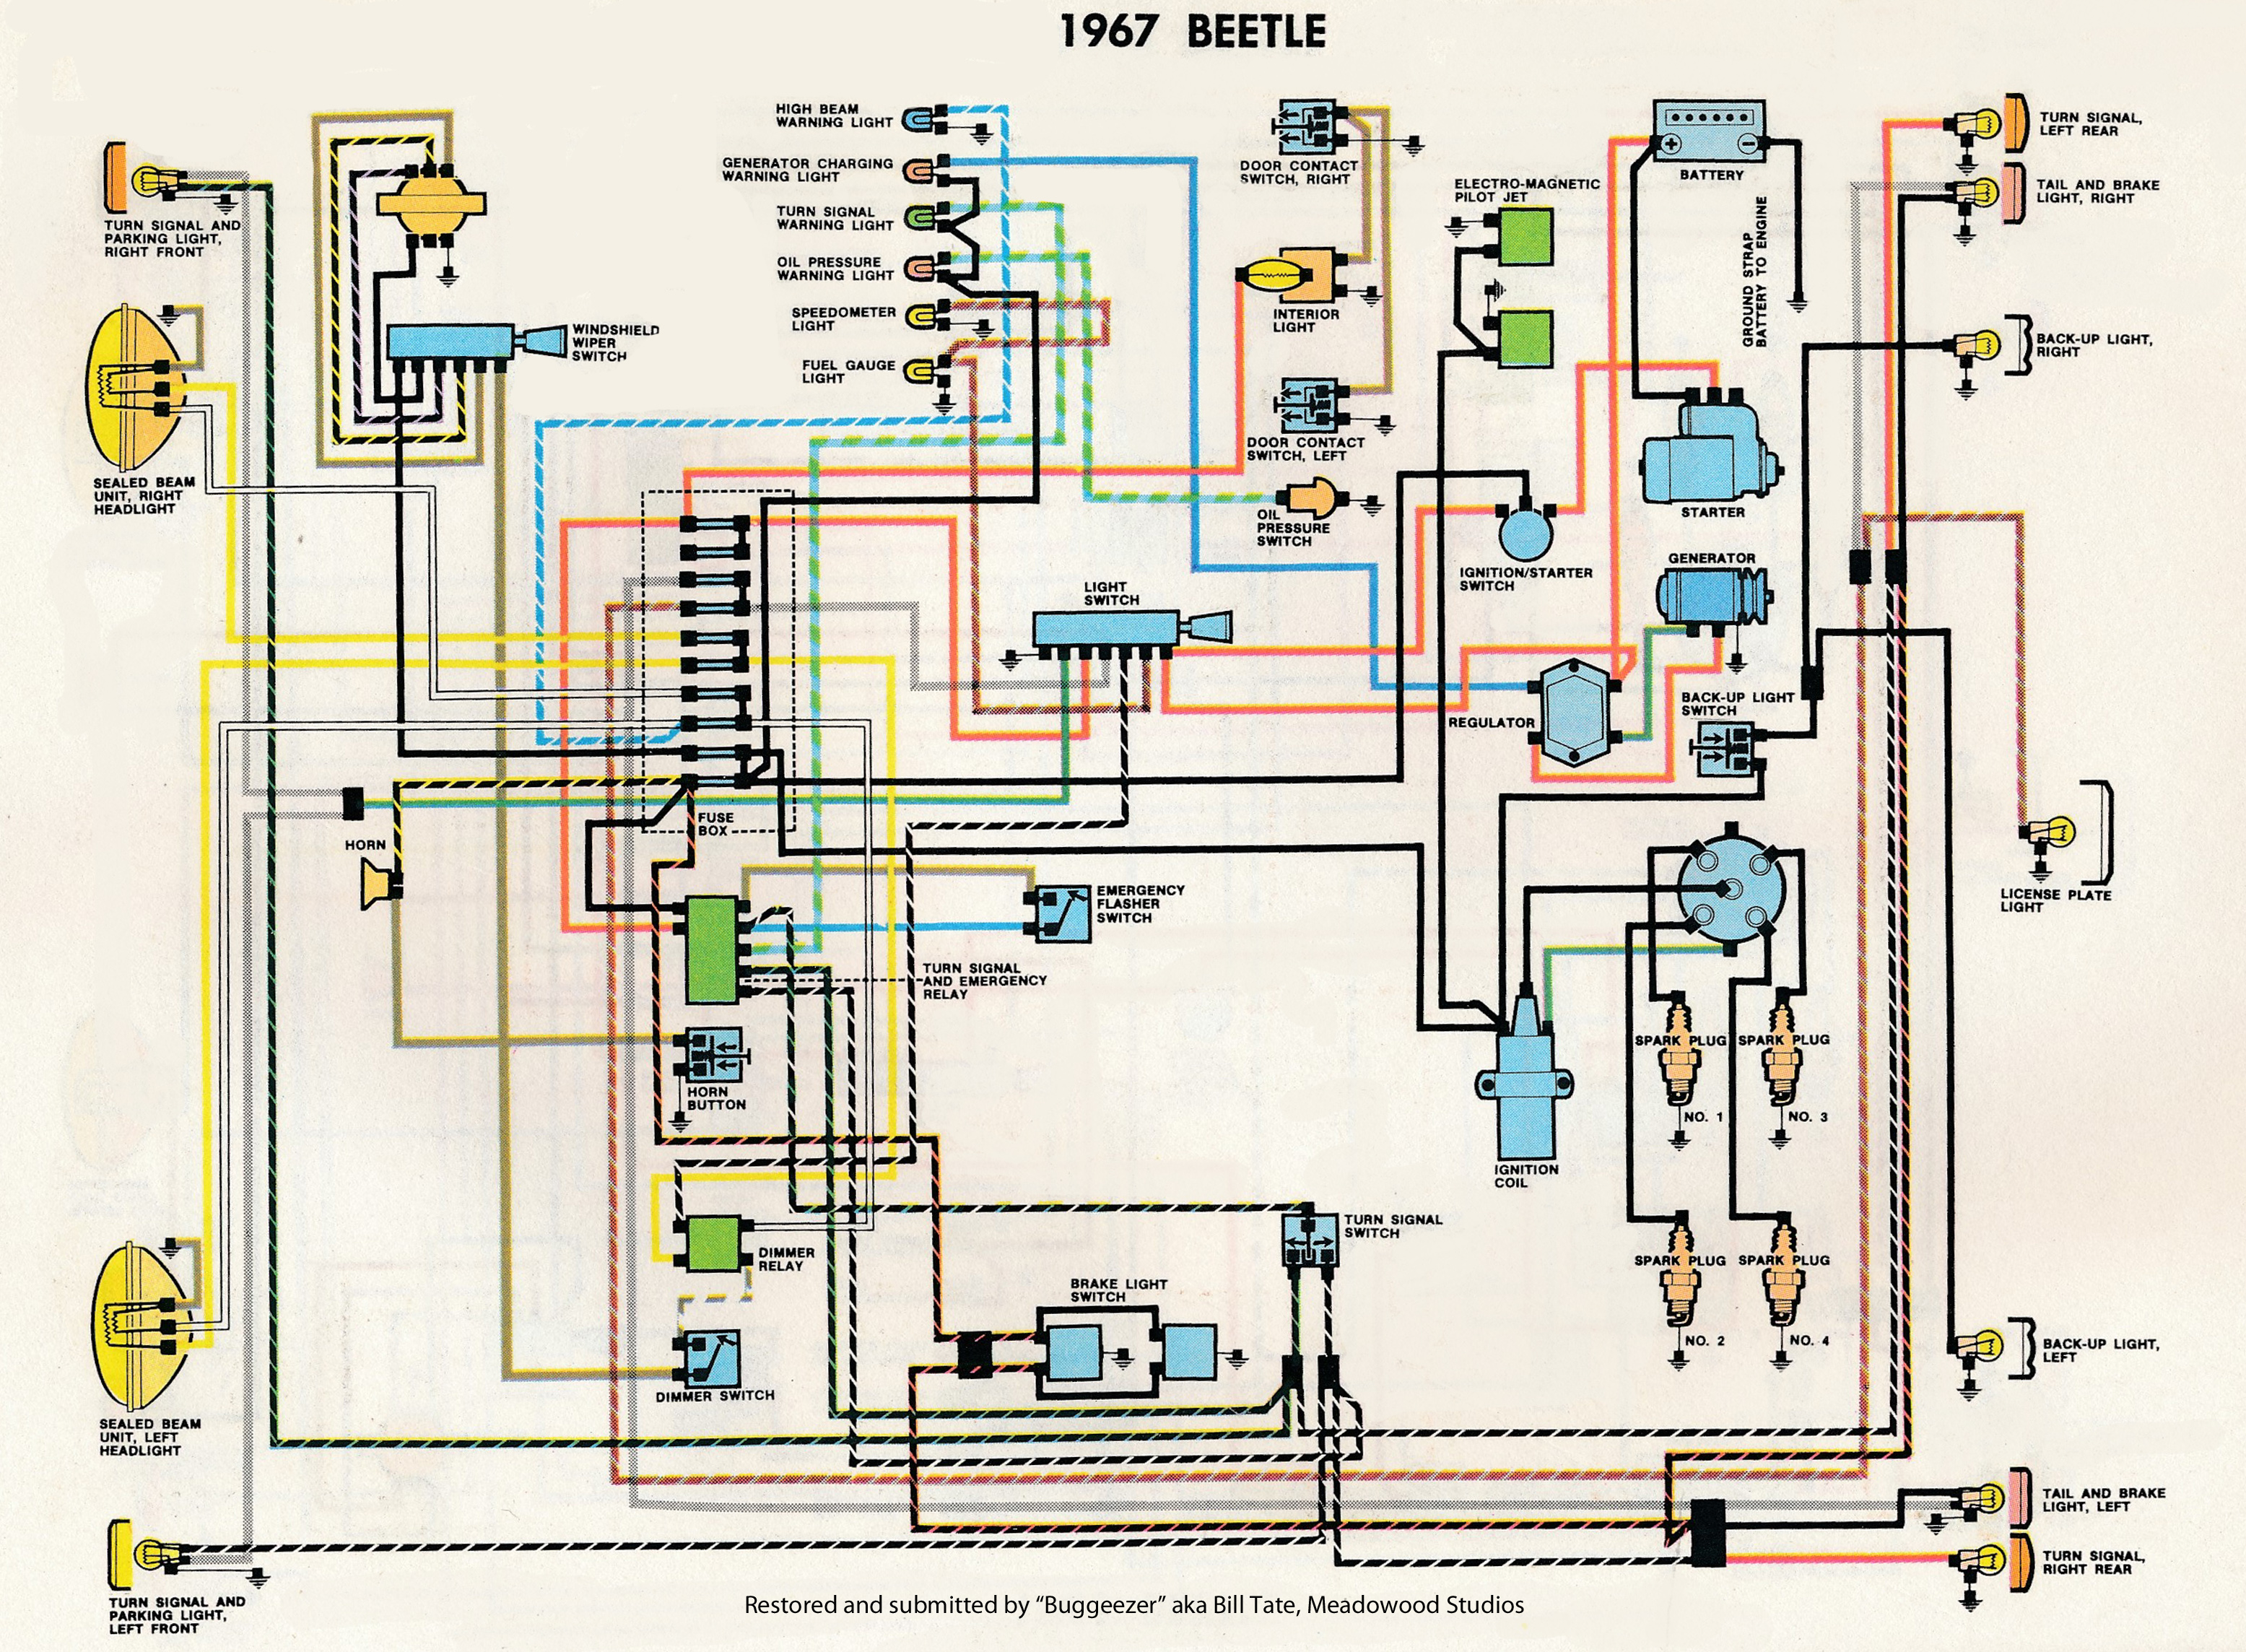 5 best images of 1967 vw beetle wiring diagram thesamba.com :: type 1 wiring diagrams